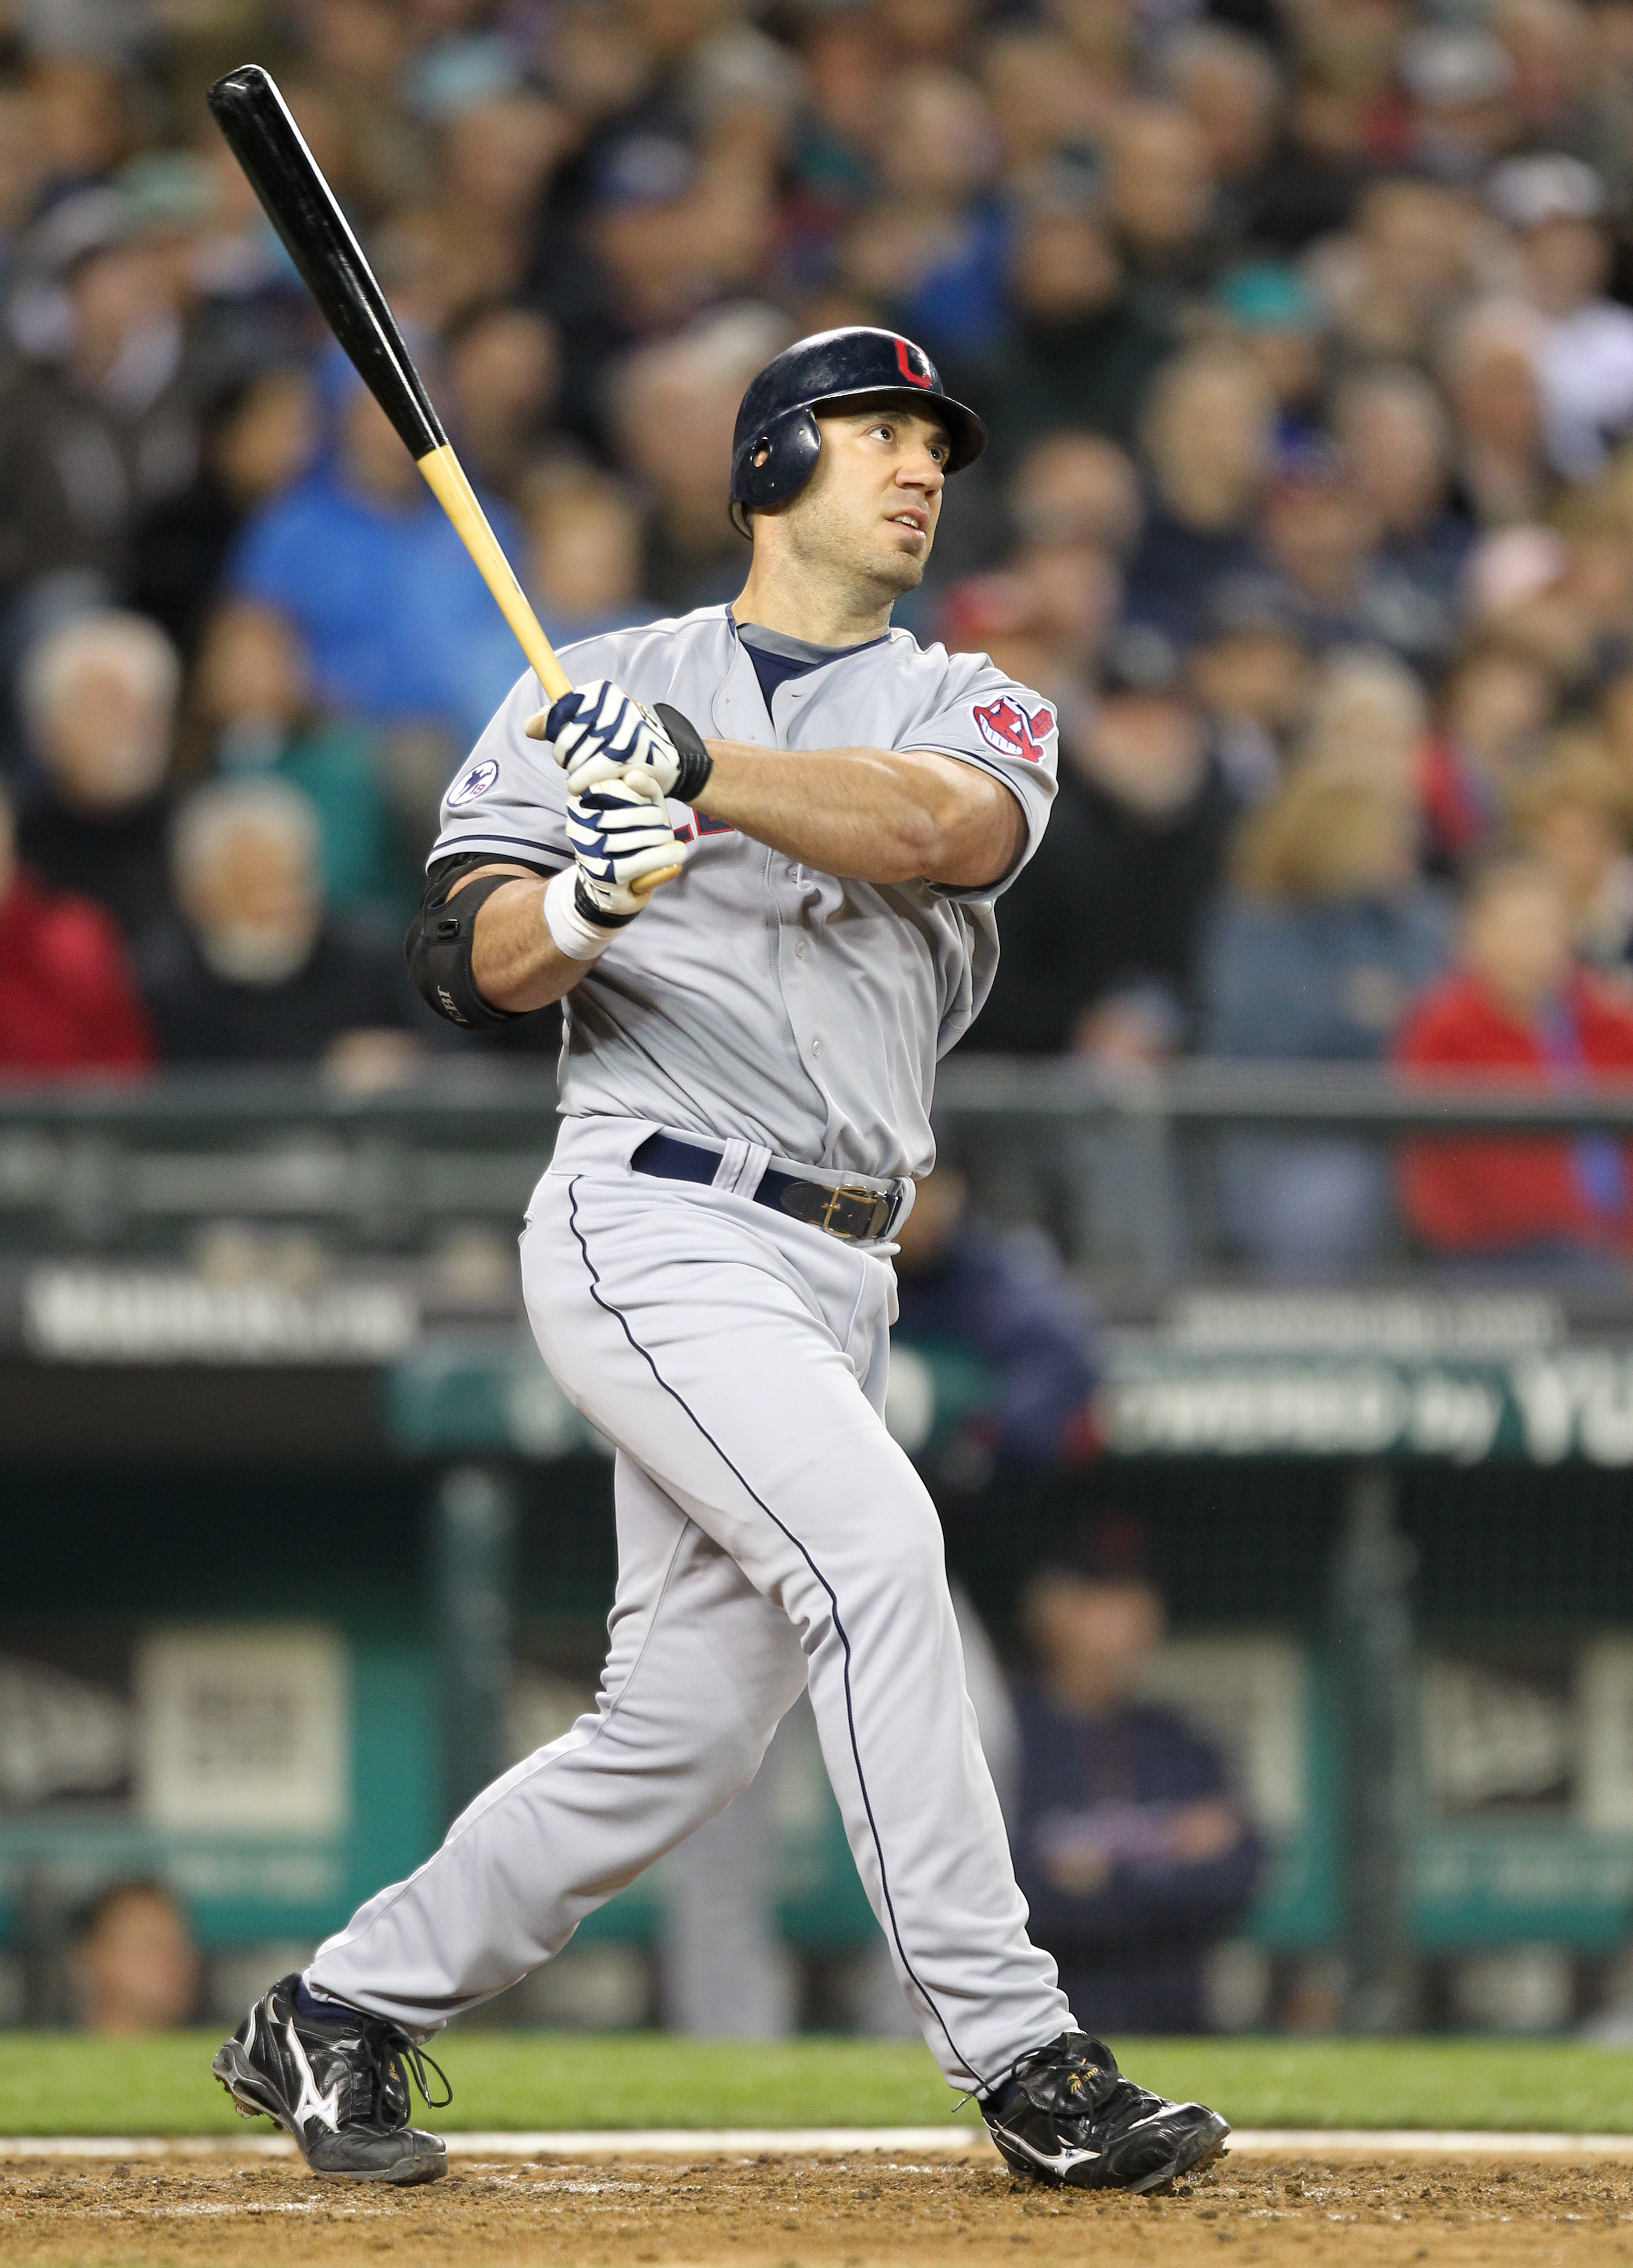 SEATTLE, WA - APRIL 08:  Travis Hafner #48 of the Cleveland Indians watches his three-run homerun in the fourth inning against the Seattle Mariners during the Mariners' home opener at Safeco Field on April 8, 2011 in Seattle, Washington. (Photo by Otto Gr